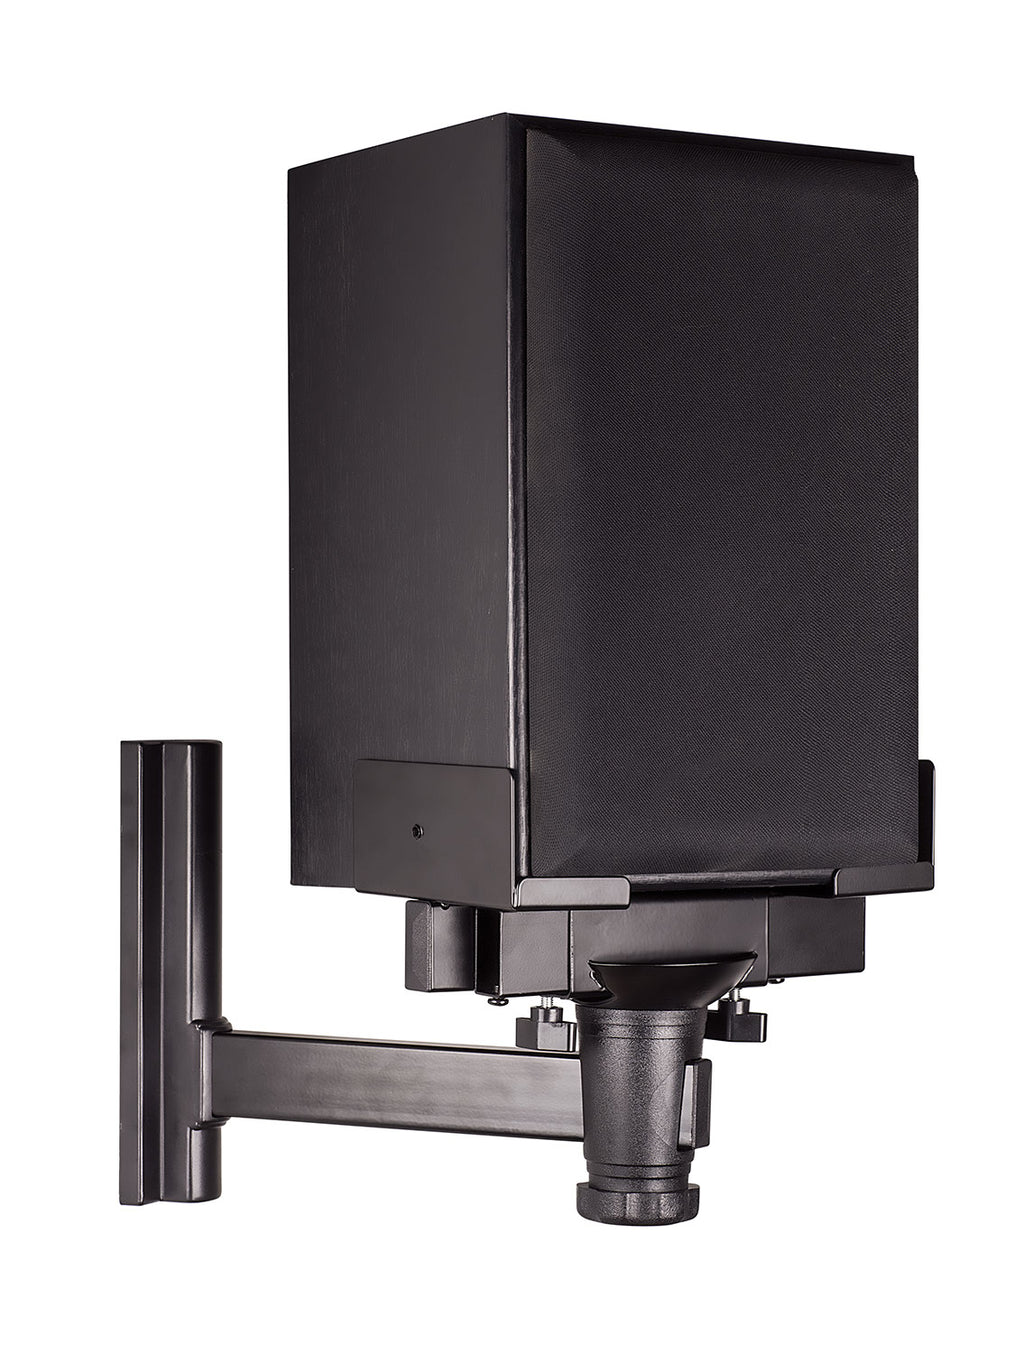 Mount-It! Speaker Wall Mount - Black - MI-SB35 - Mount-It!